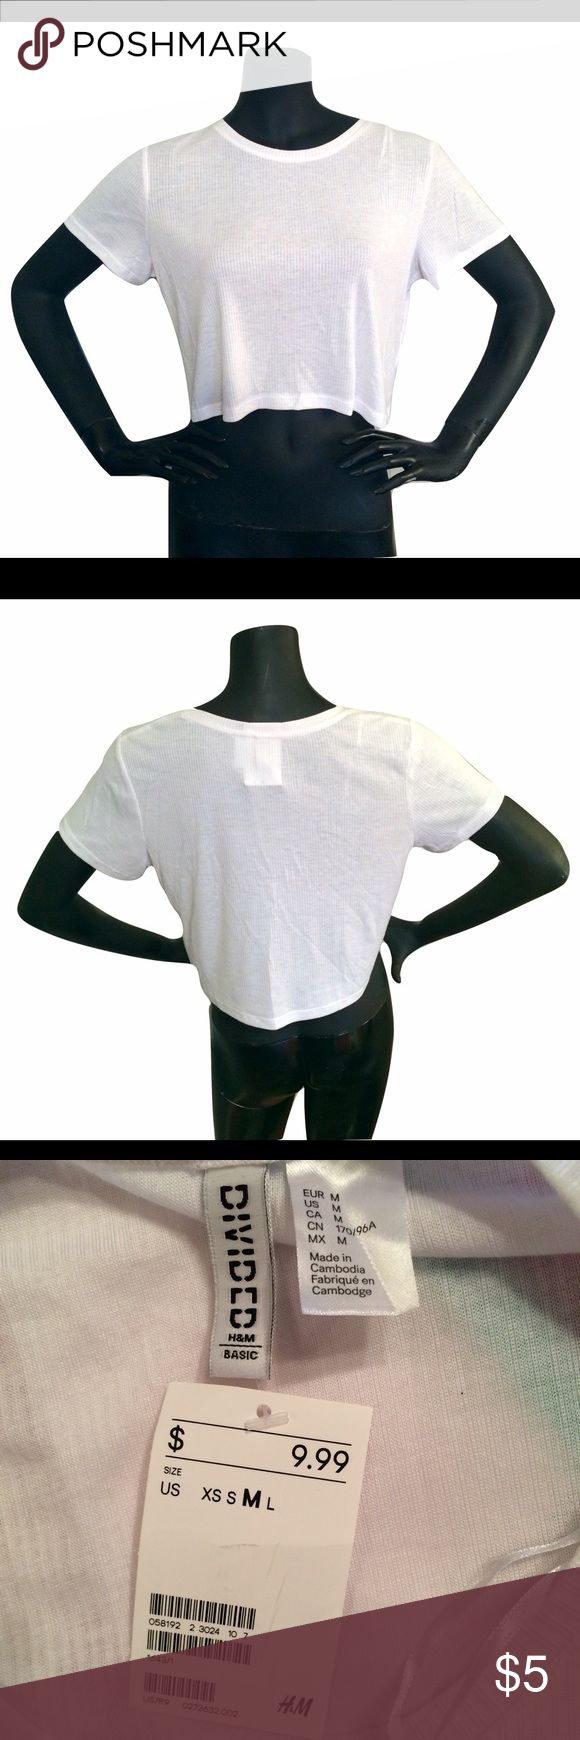 """White Short Sleeve Top Divided White Short Sleeve Top Divided Brand New With Tags All Measurements Approximate  Neck-8.5"""" Shoulder-15.5"""" Sleeve-6.5"""" Chest-16"""" Length-17.5"""" Divided Tops Tees - Short Sleeve"""